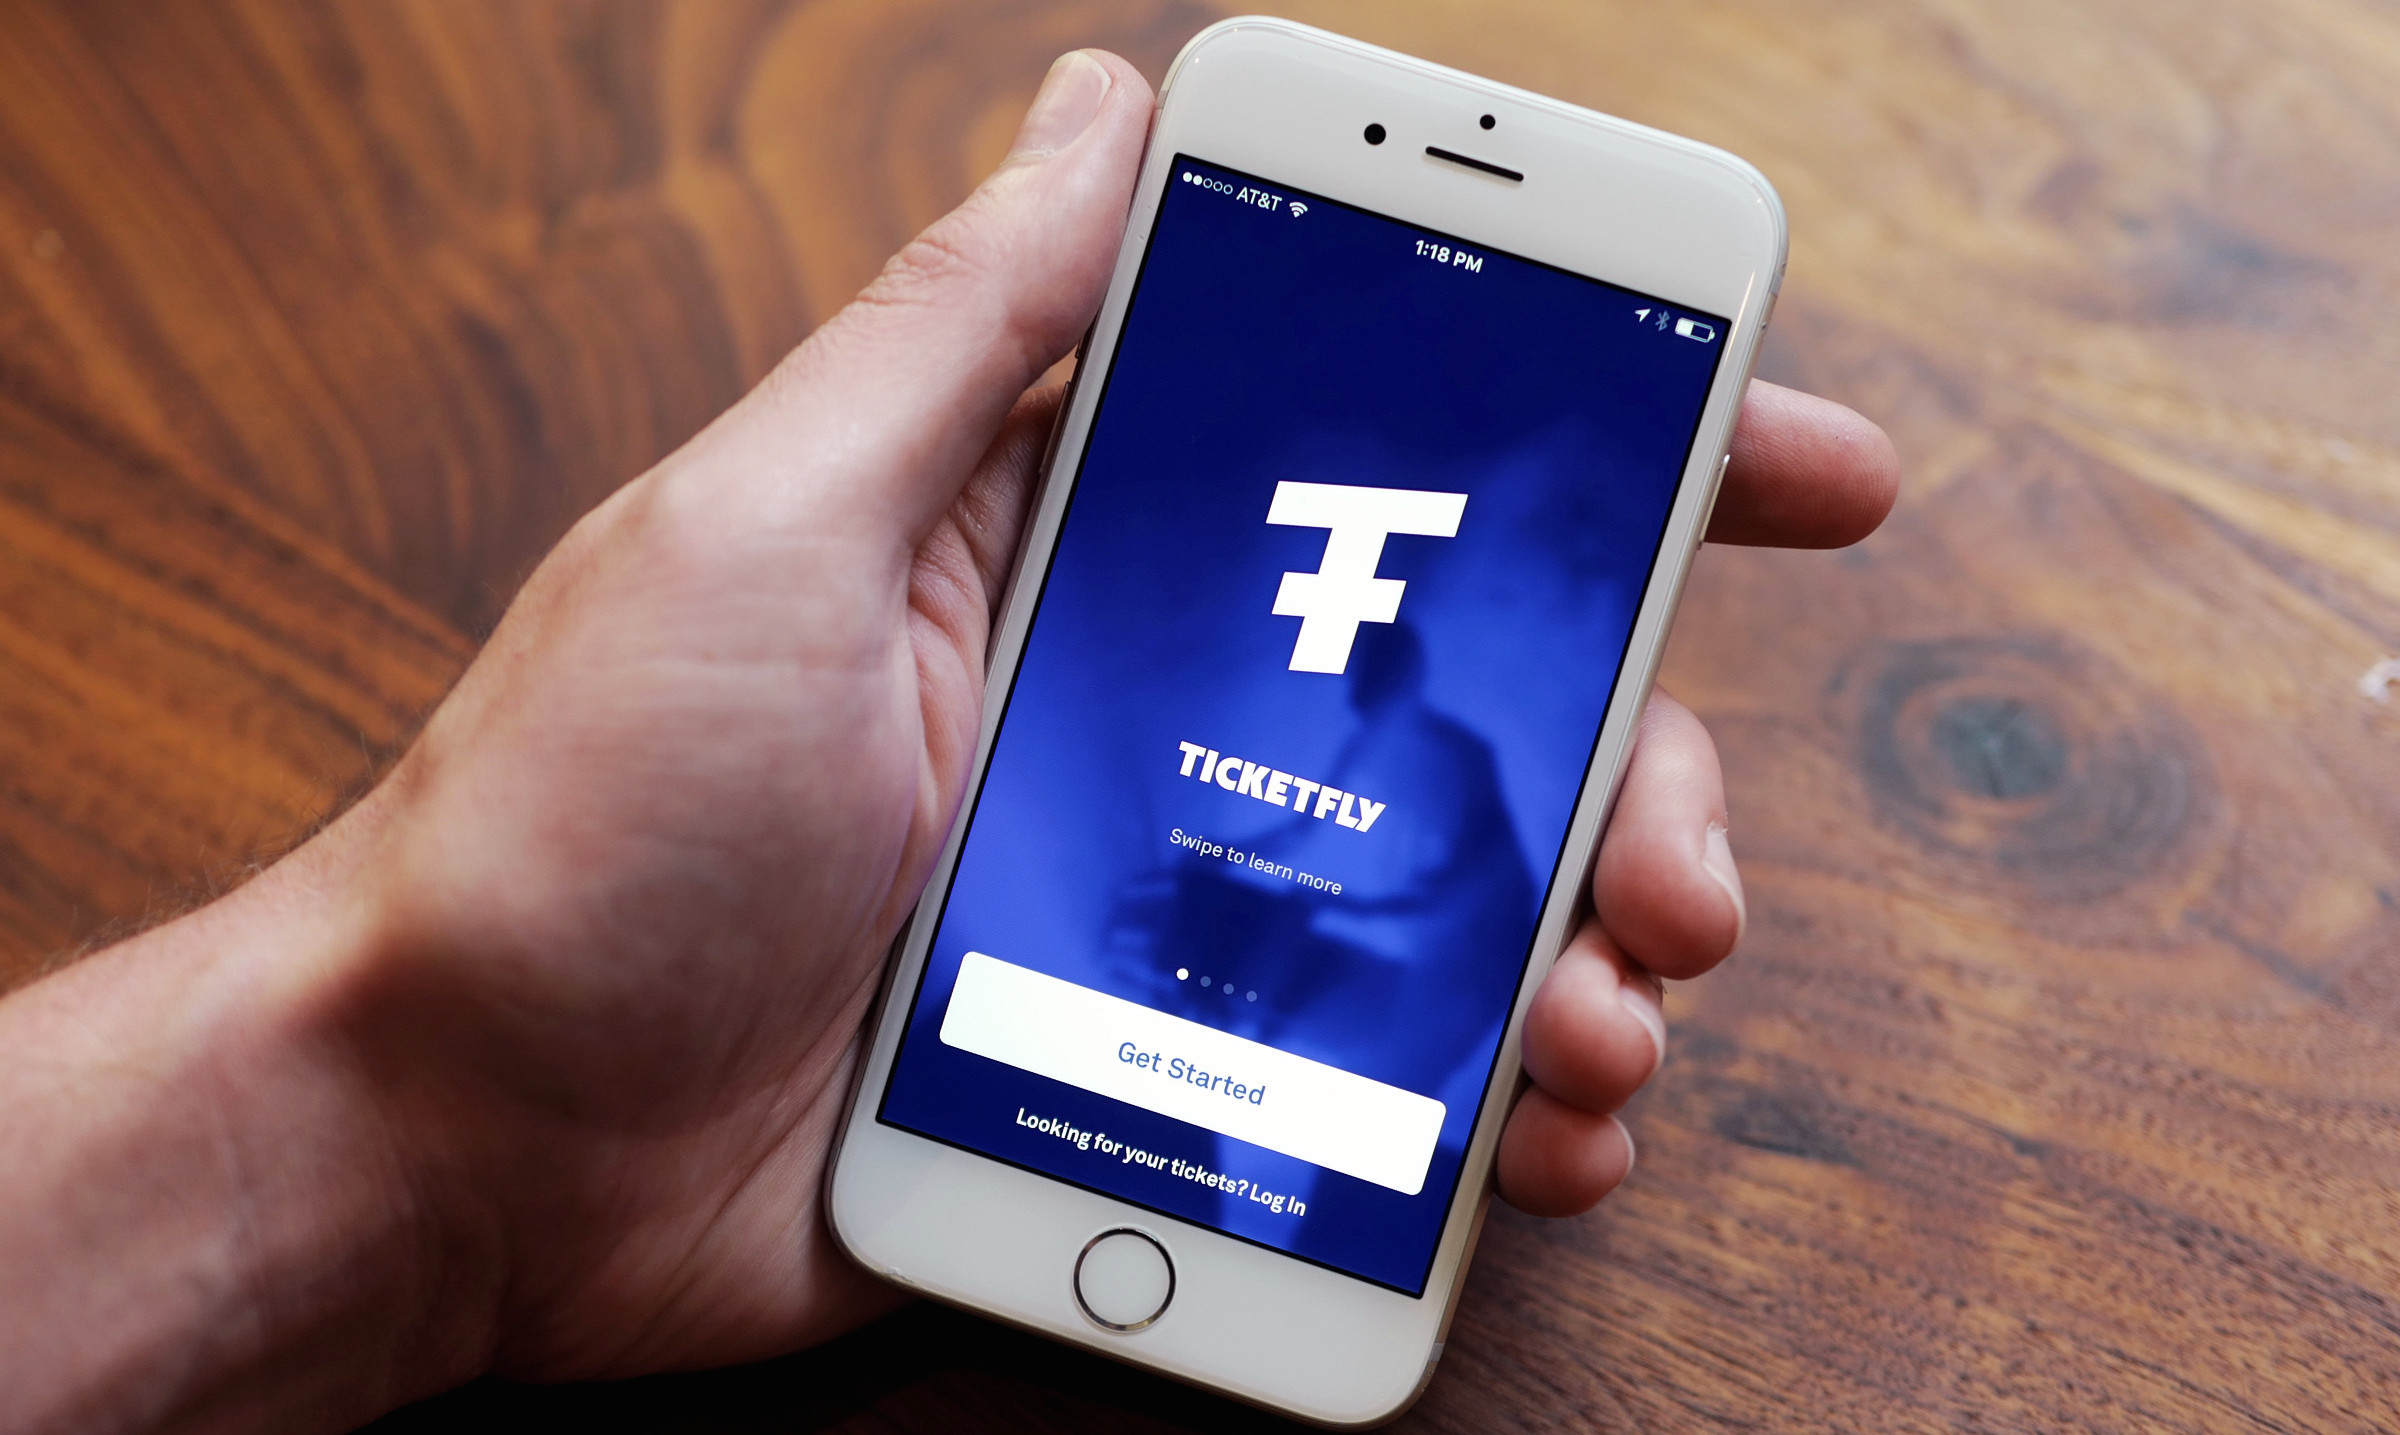 Ticketfly says user data was compromised in recent hack